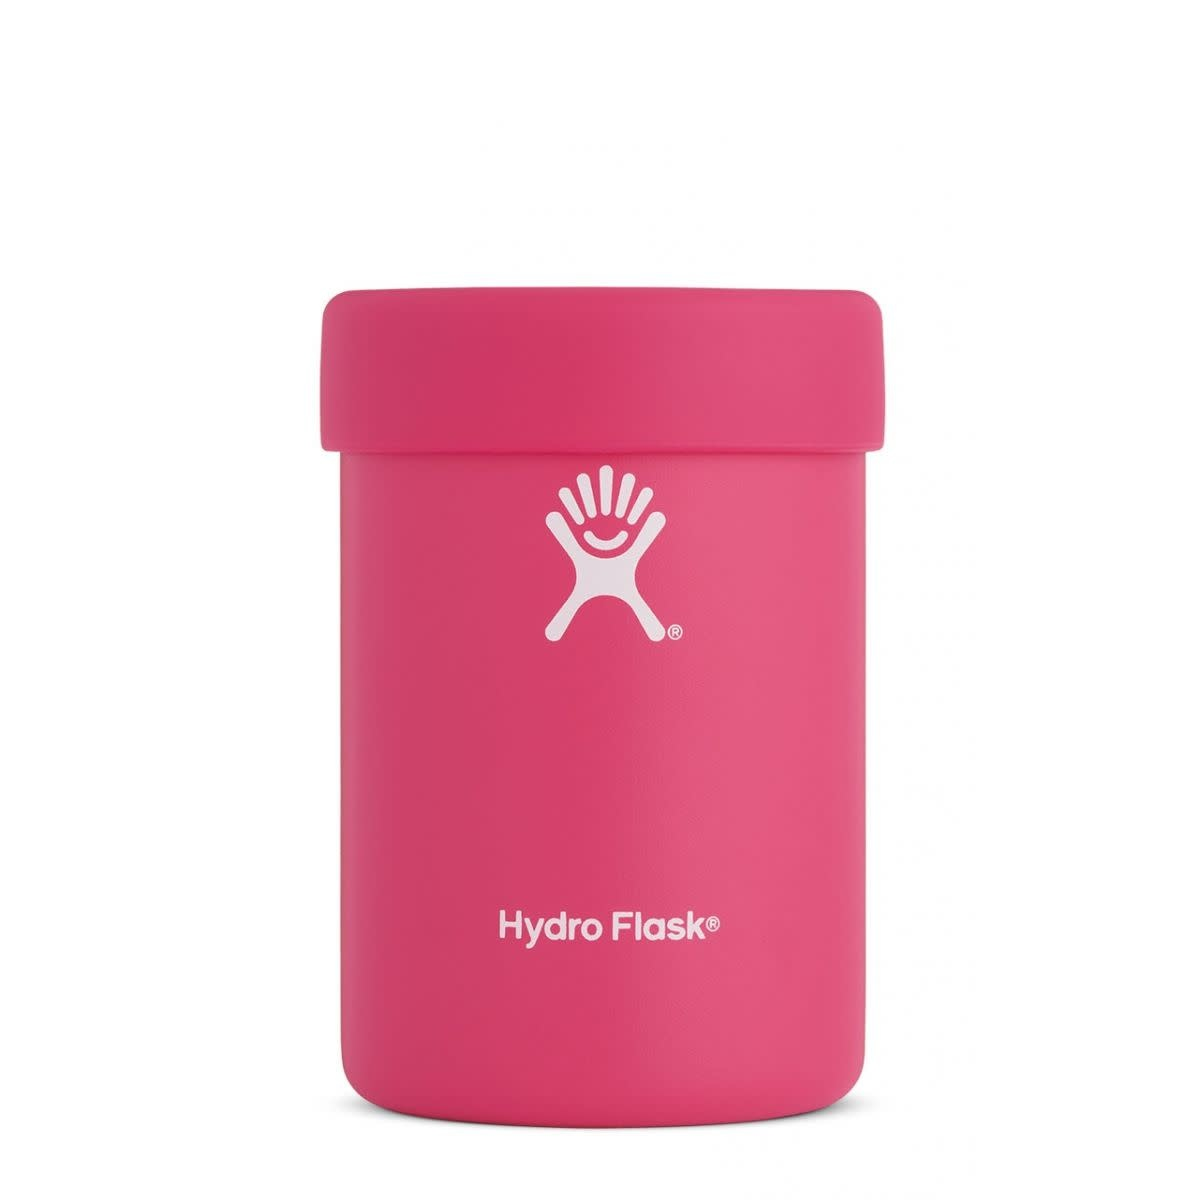 Hydroflask HF 12oz COOLER CUP